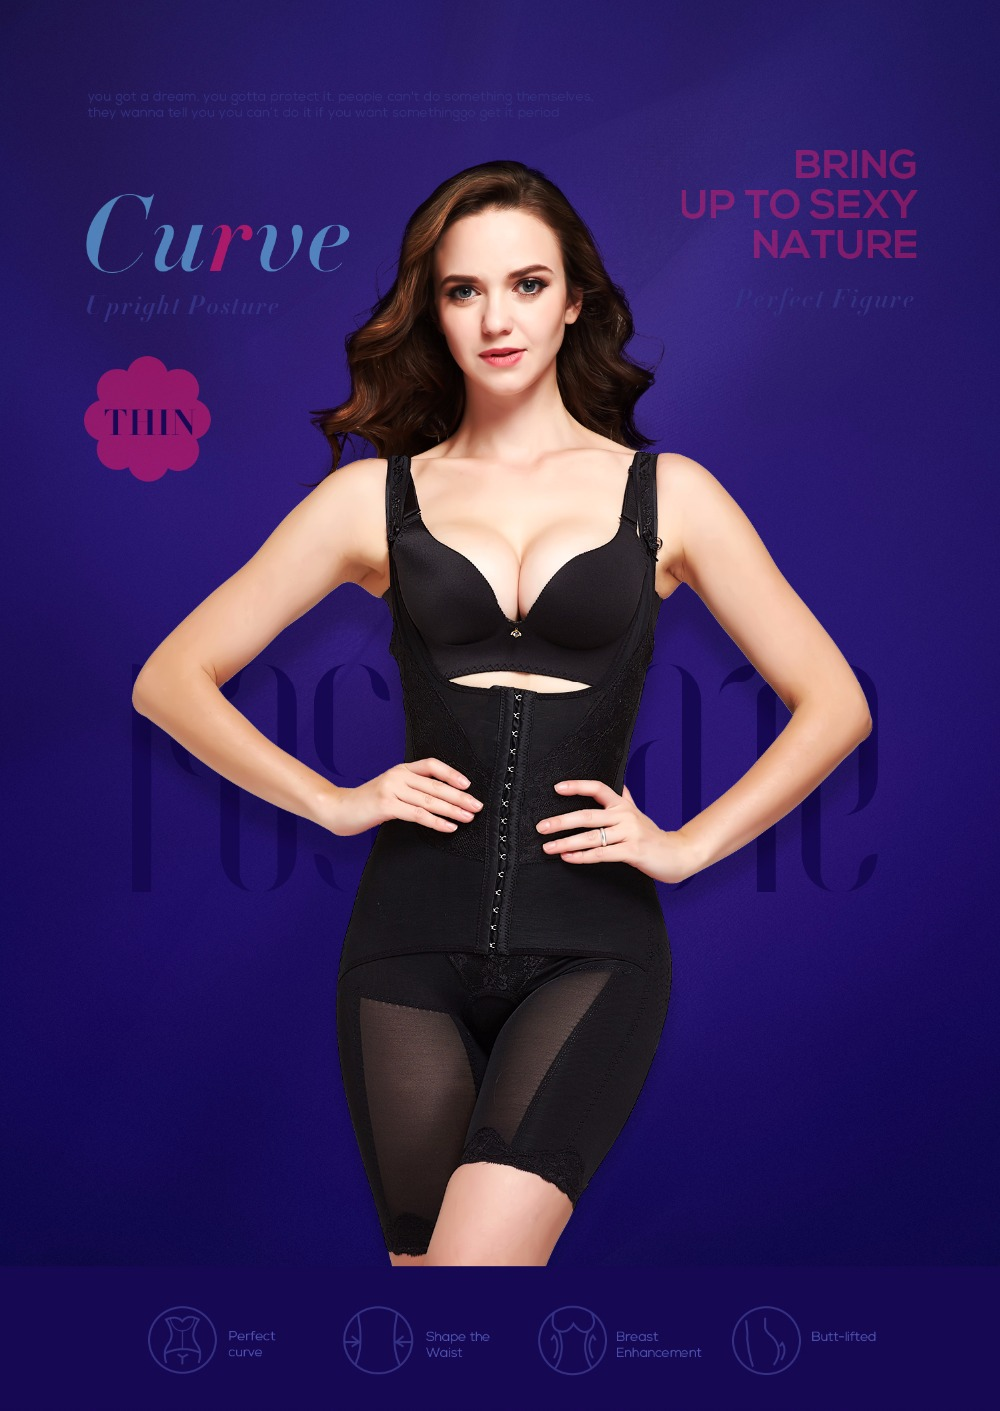 Rio-up 20 shapewear pantyhose with slimming and lift girdle